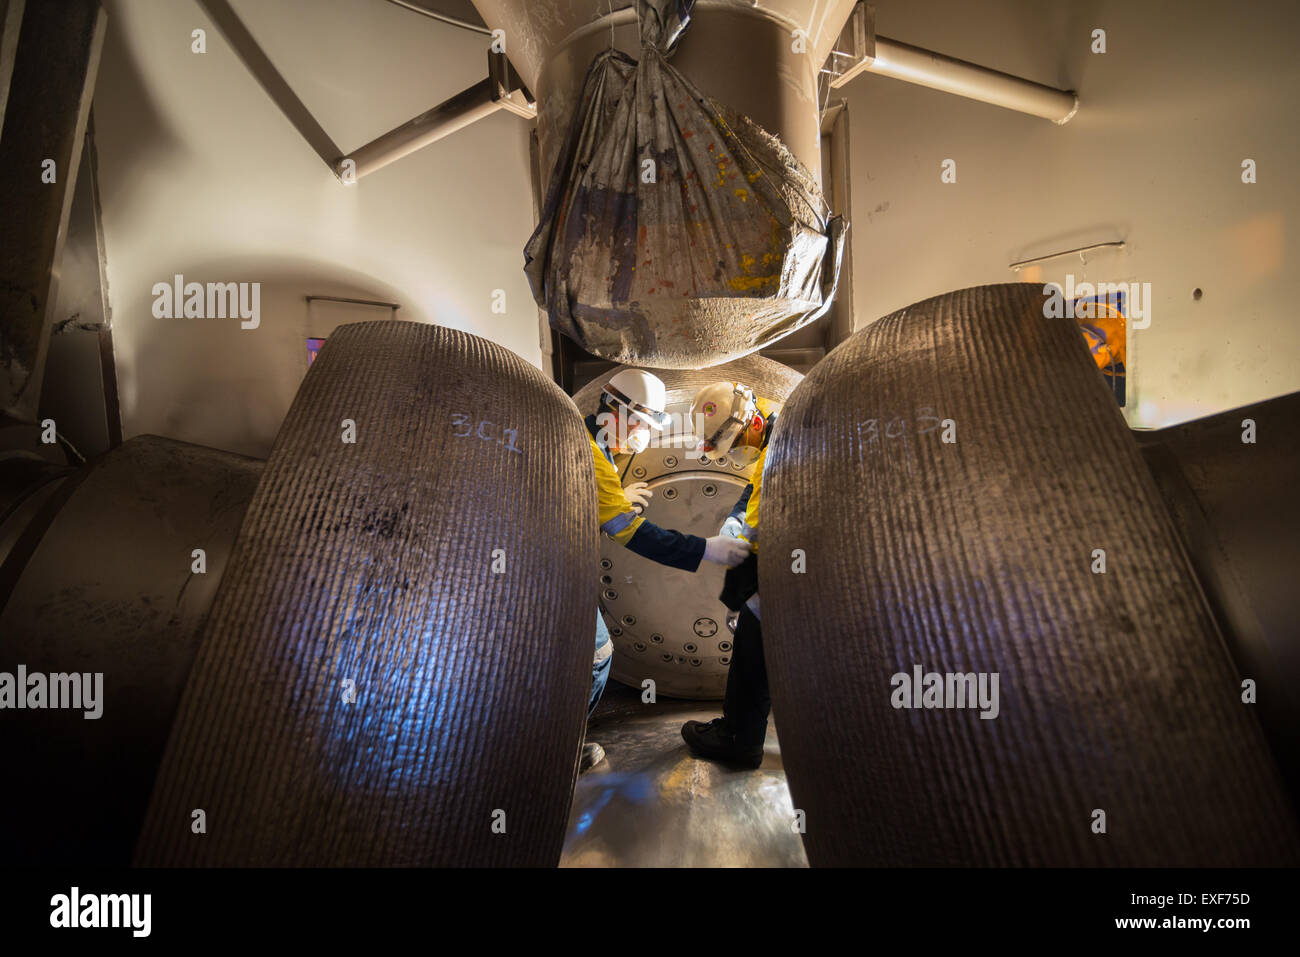 Maintenance activity at coal-fired power plant. - Stock Image